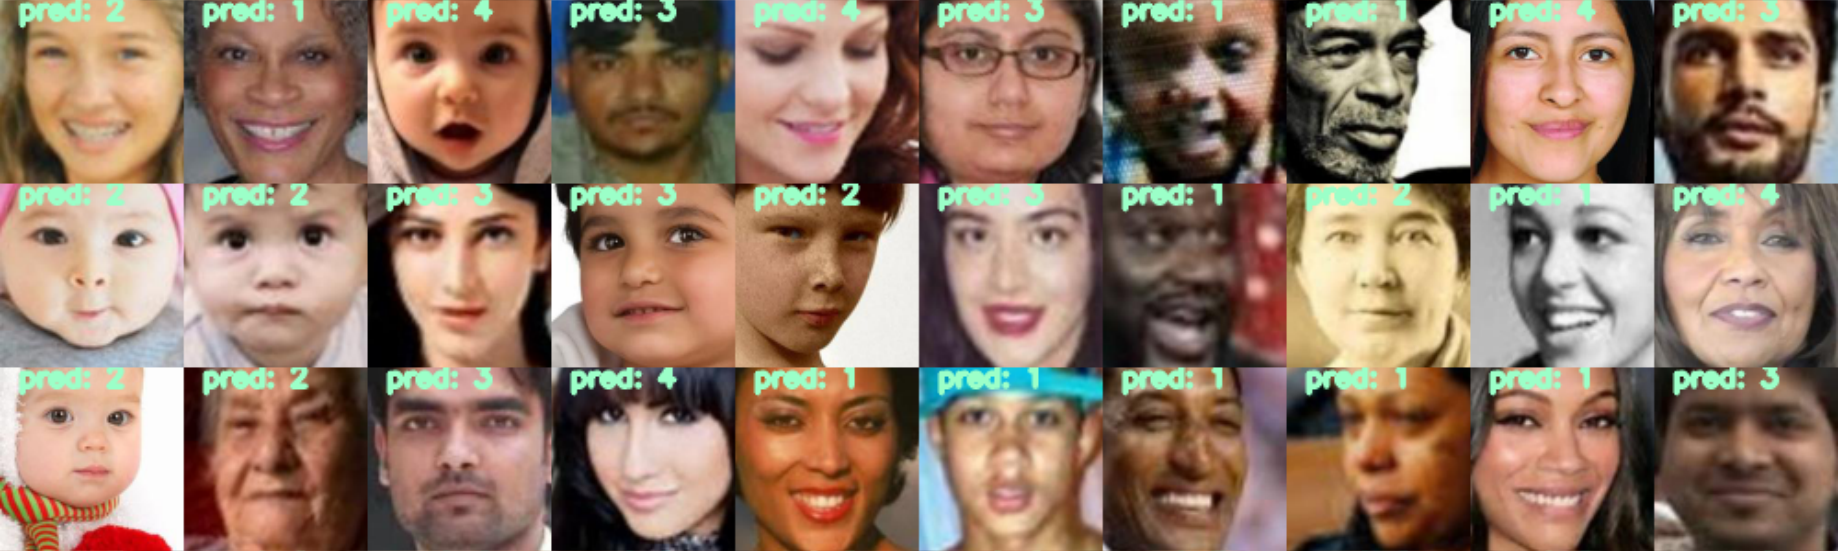 Gender and Race recognition with Transfer, Multi-task Learning